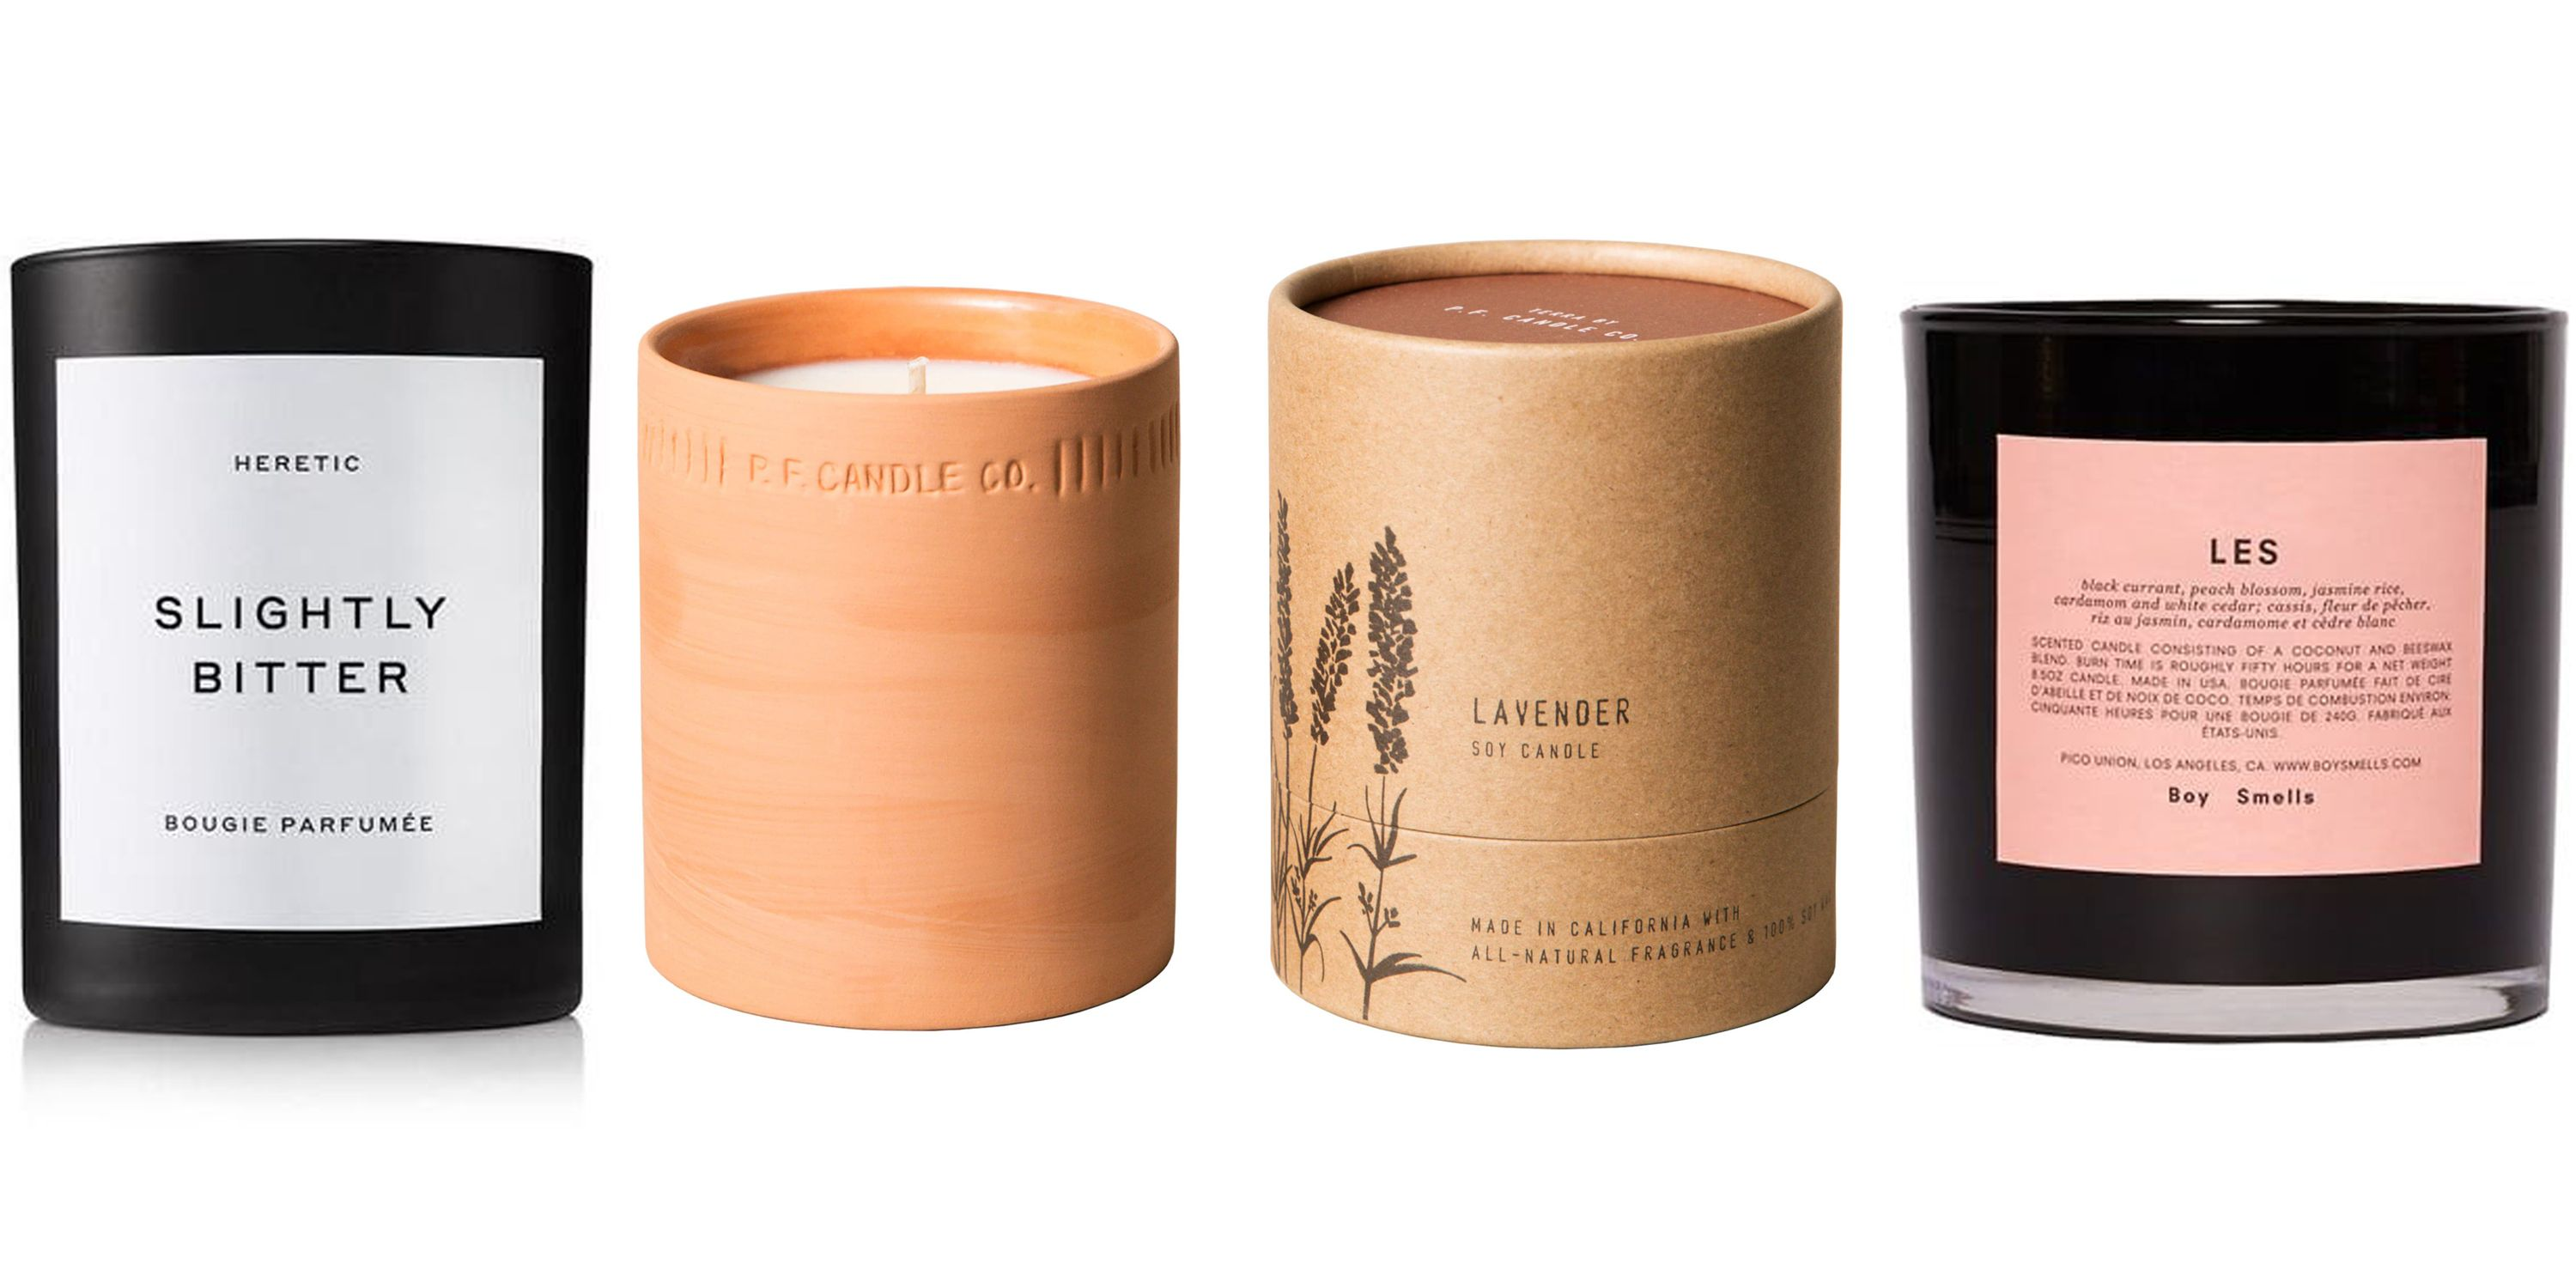 7 Best Organic And Natural Candles 2021 Top Natural Candle Brands